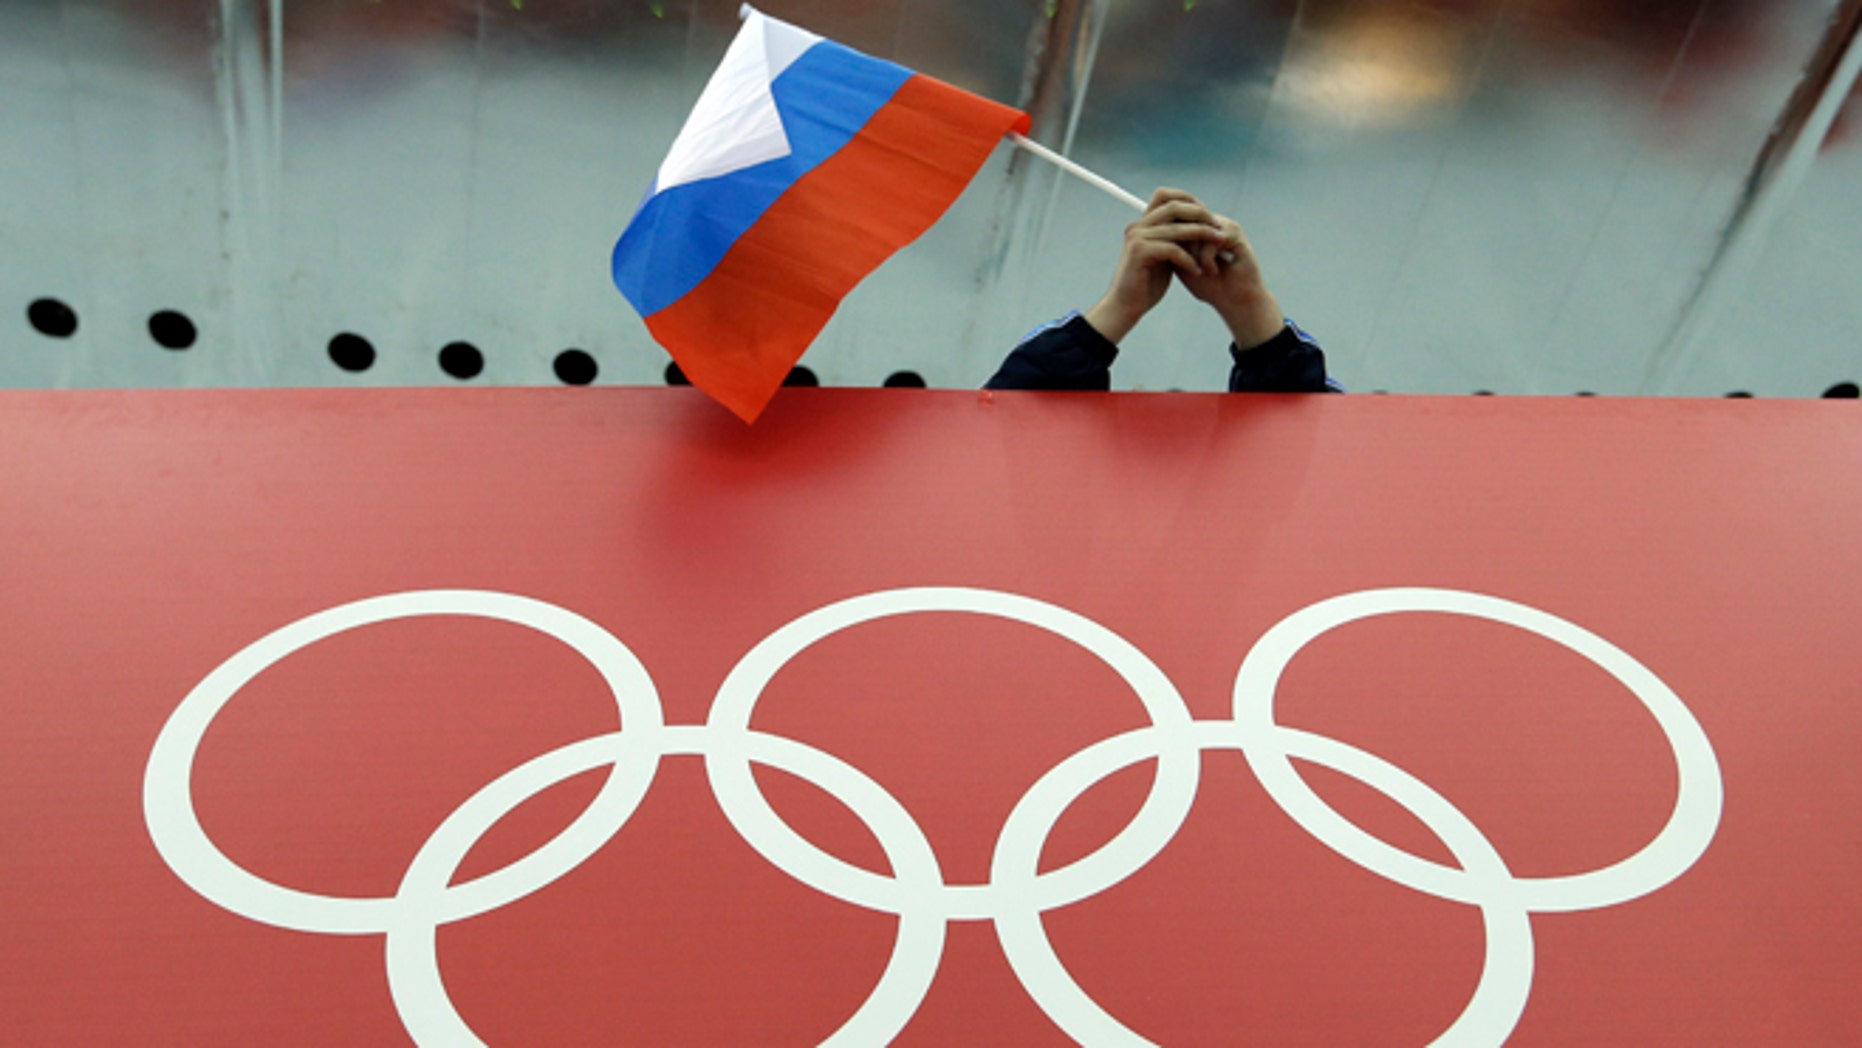 FILE - In this Feb. 18, 2014 file photo, a Russian skating fan holds the country's national flag over the Olympic rings before the start of the men's 10,000-meter speedskating race at Adler Arena Skating Center during the 2014 Winter Olympics in Sochi, Russia. The credibility of the fight against doping in sports will be at stake Friday, June 17, 2016 when track and field's world governing body decides whether to uphold or lift its ban on Russian athletes ahead of the Rio de Janeiro Olympics. Sports geopolitics — and the key issue of individual justice vs. collective punishment — frame the debate heading into the meeting of IAAF leaders in Vienna. (AP Photo/David J. Phillip, file)